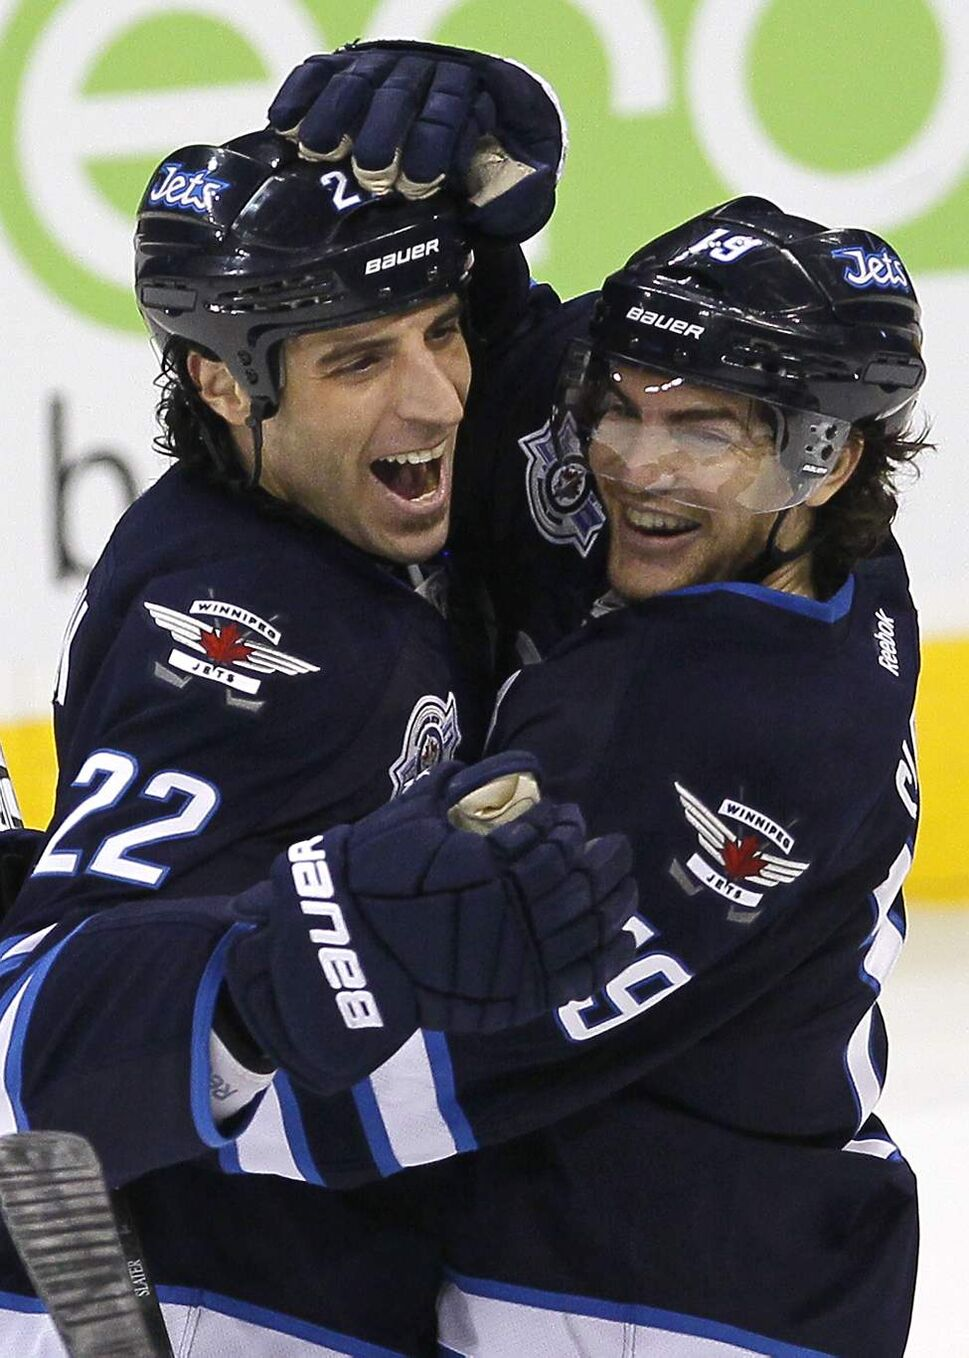 Winnipeg Jets' Chris Thorburn (22), and Jim Slater (19) celebrate Thorburn's goal against the Buffalo Sabres during third period NHL action in Winnipeg on March 5, 2012. (John Woods / The Winnipeg Free Press)